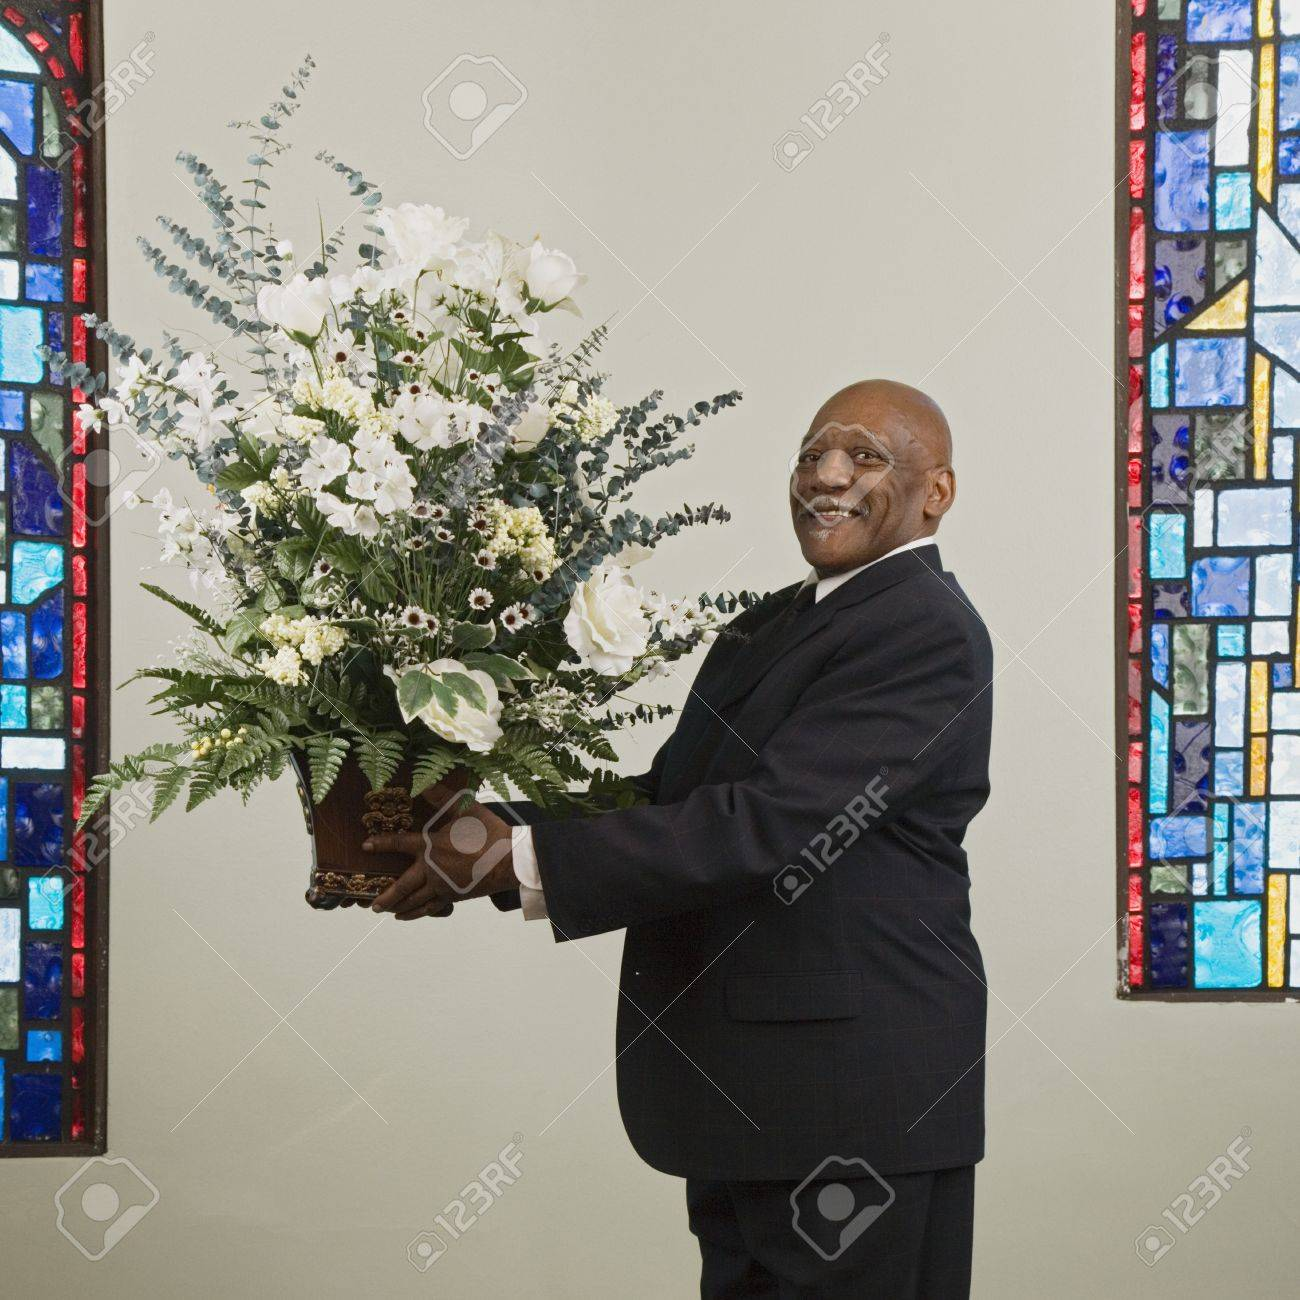 African man holding flower bouquet in church Stock Photo - 16094667